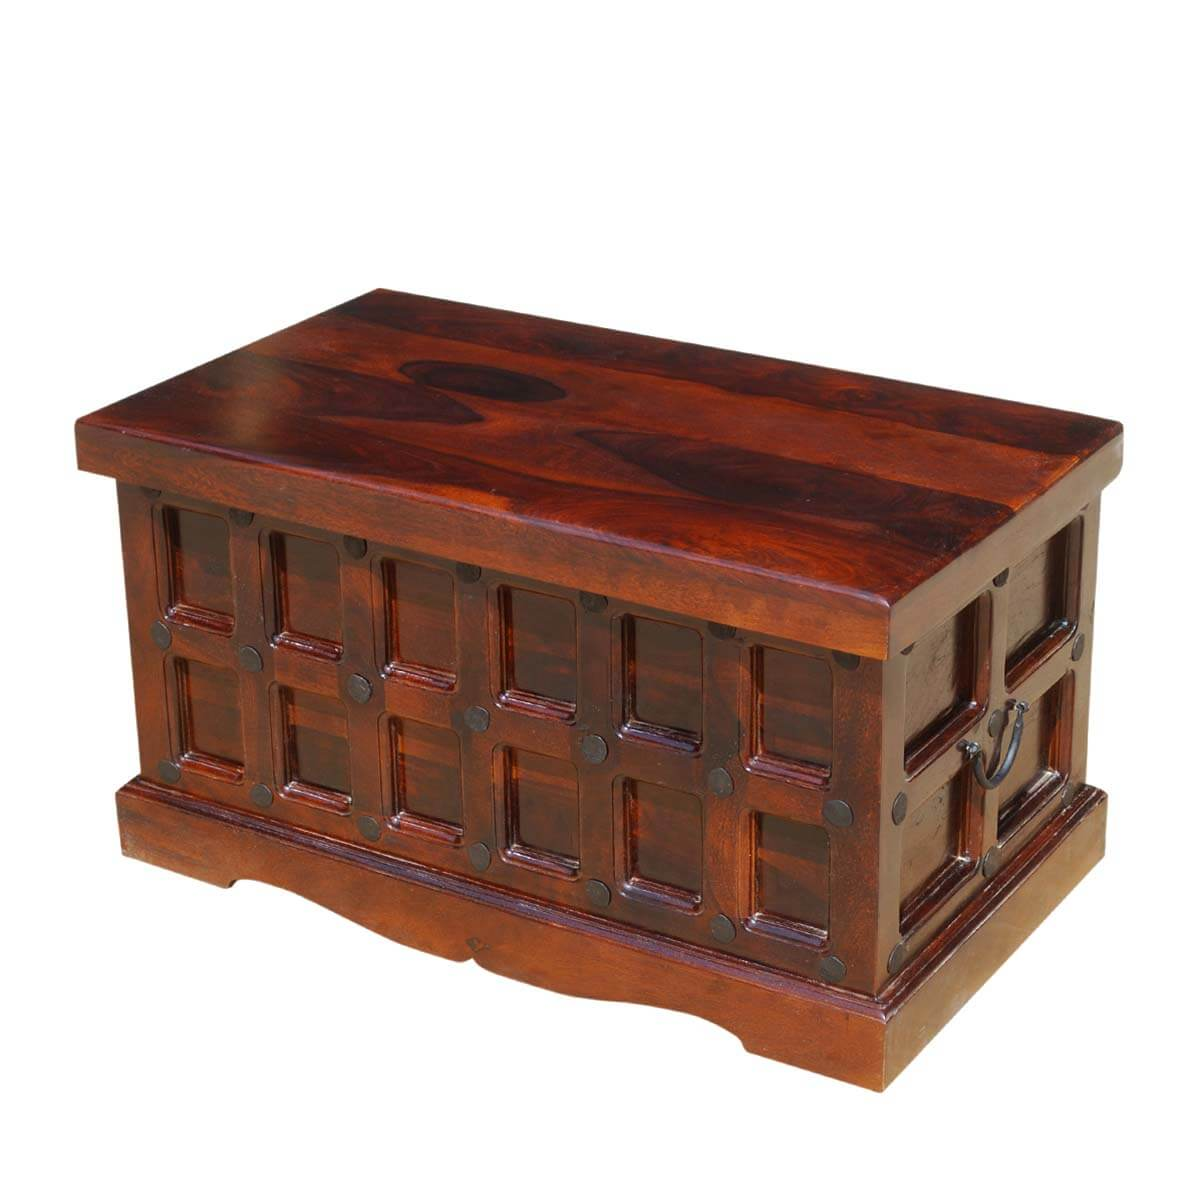 Solid wood trunk coffee table blanket storage chest Coffee table chest with storage